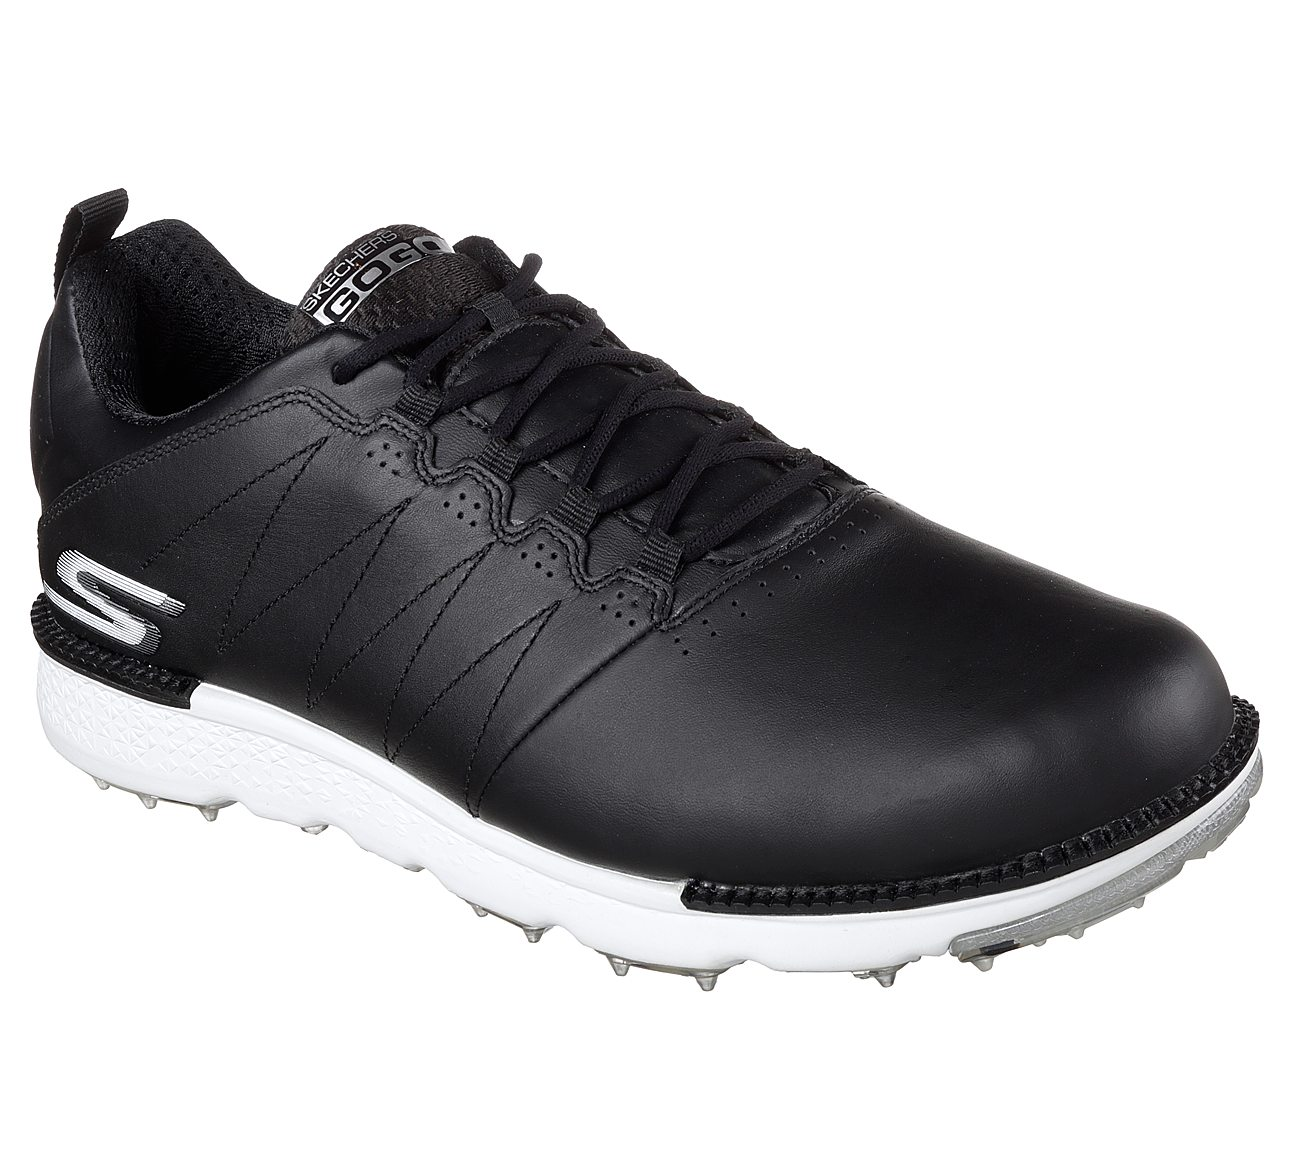 Skechers Go Golf Elite V3 Golf Shoe - Black